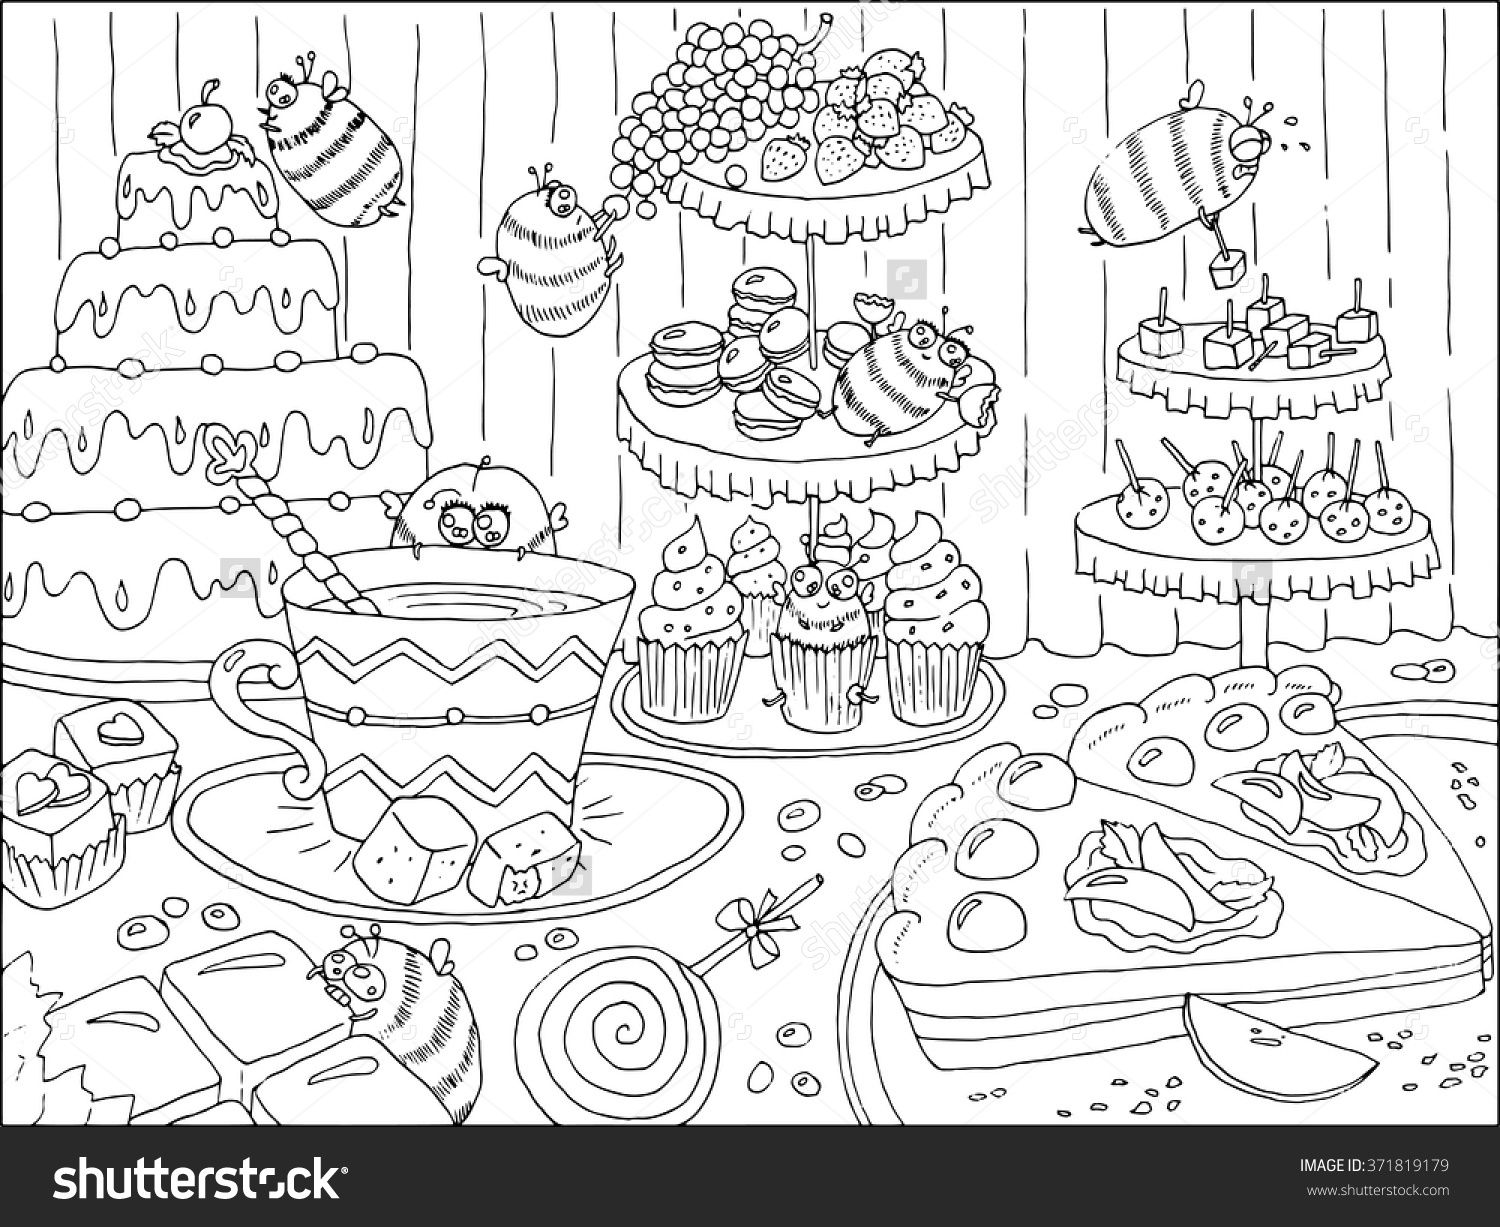 Black And White Hand Drawn Illustration With Funny Bees In Sweetshop Artwork With Cakes Sweets And Black And White Bee Coloring Books Drawing Illustration